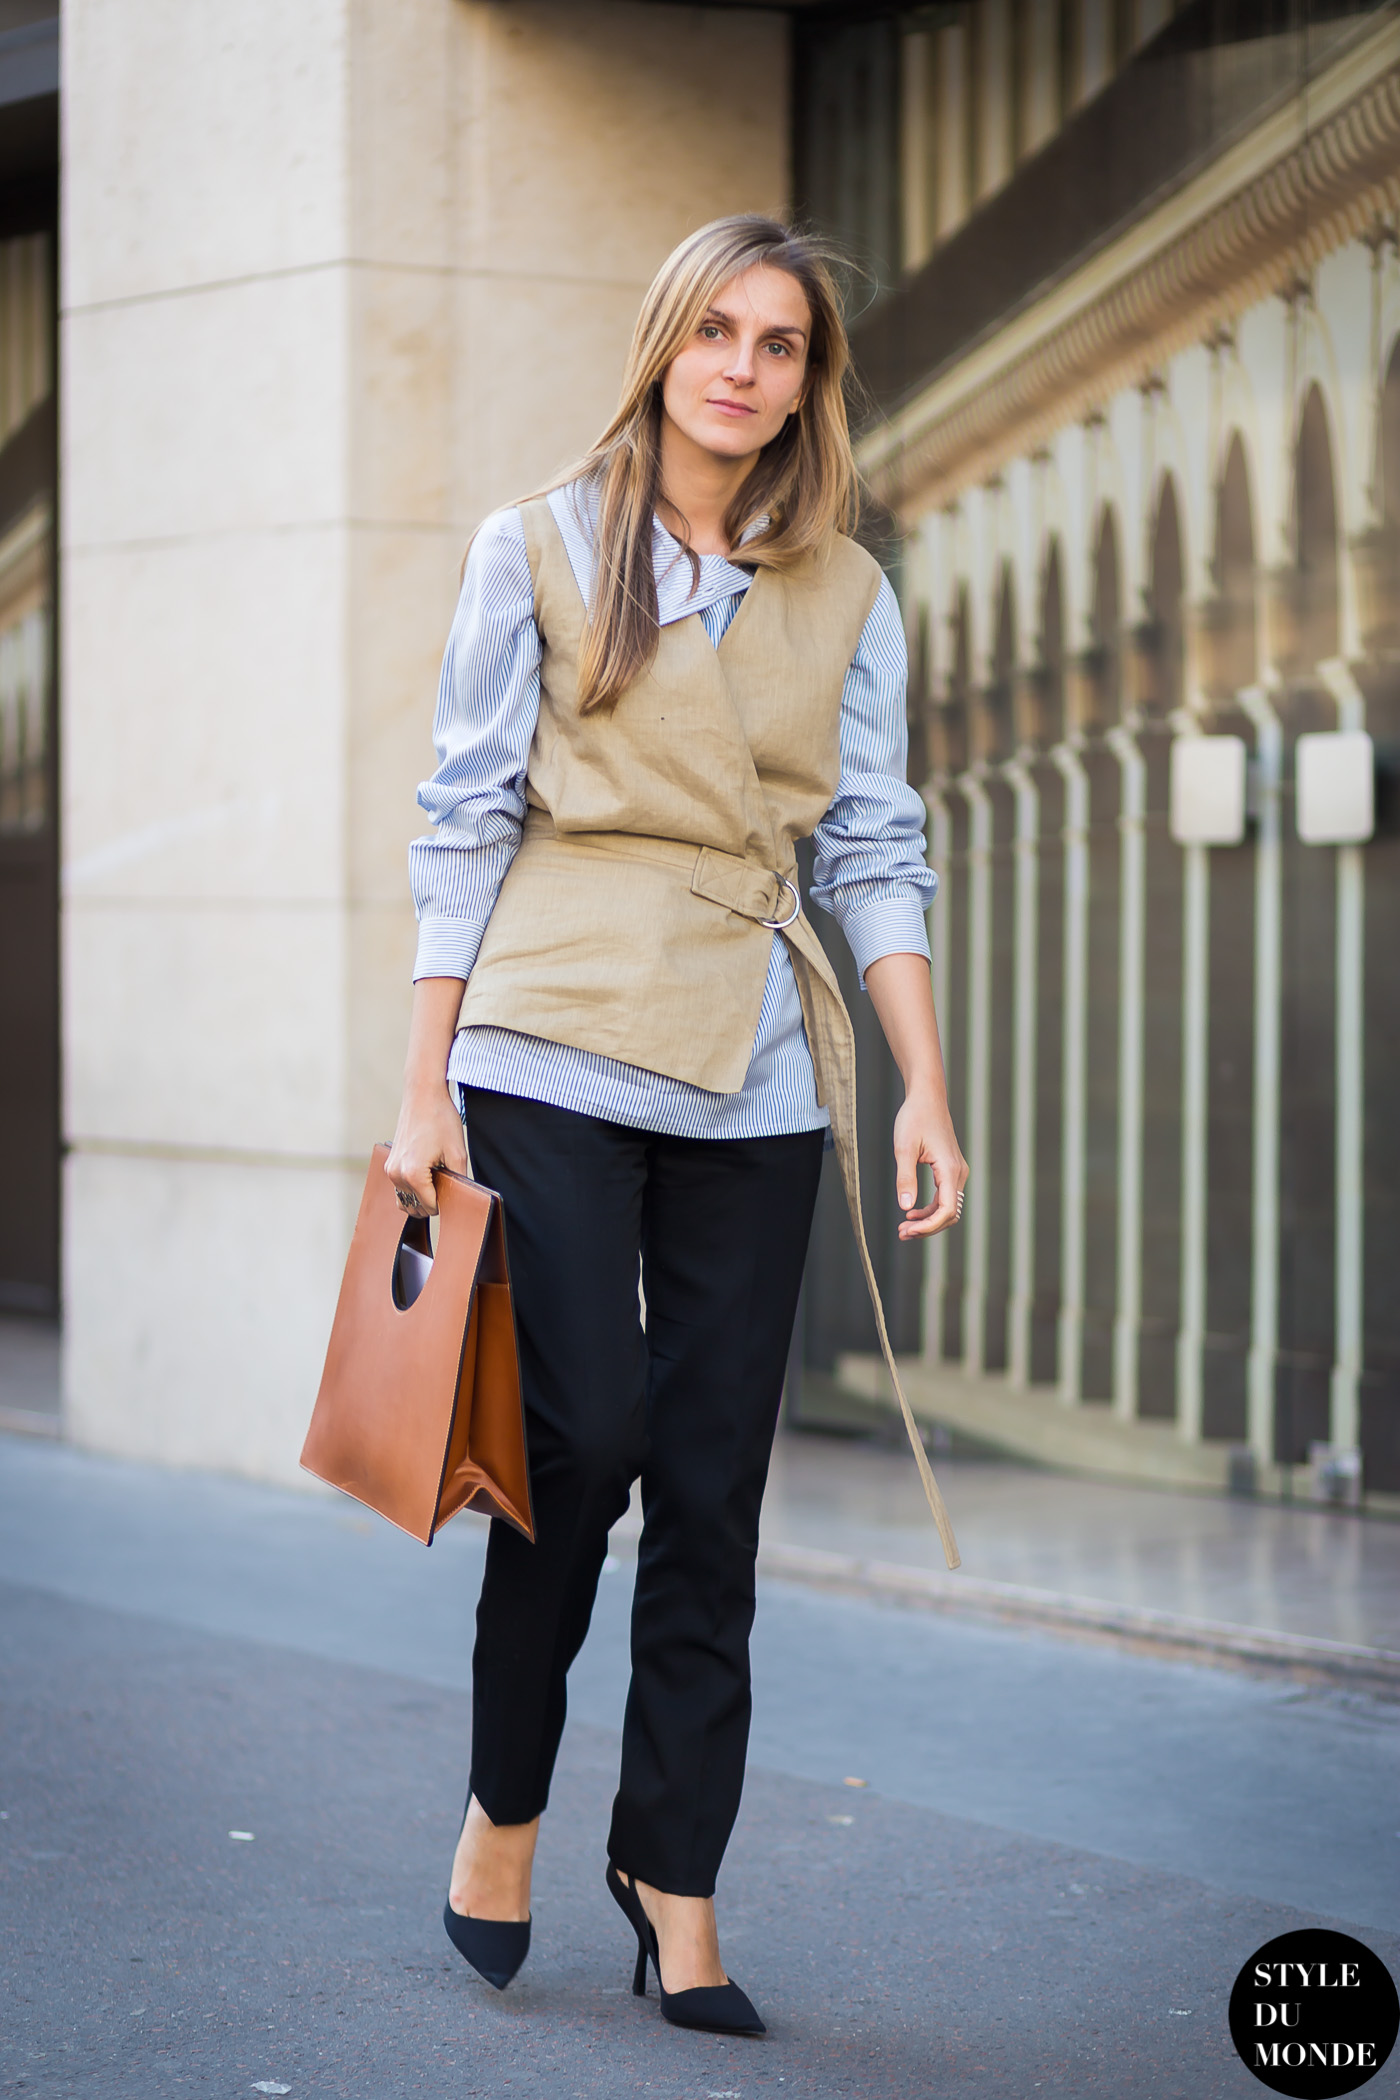 Gaia Repossi Street Style Street Fashion Streetsnaps by STYLEDUMONDE Street Style Fashion Blog